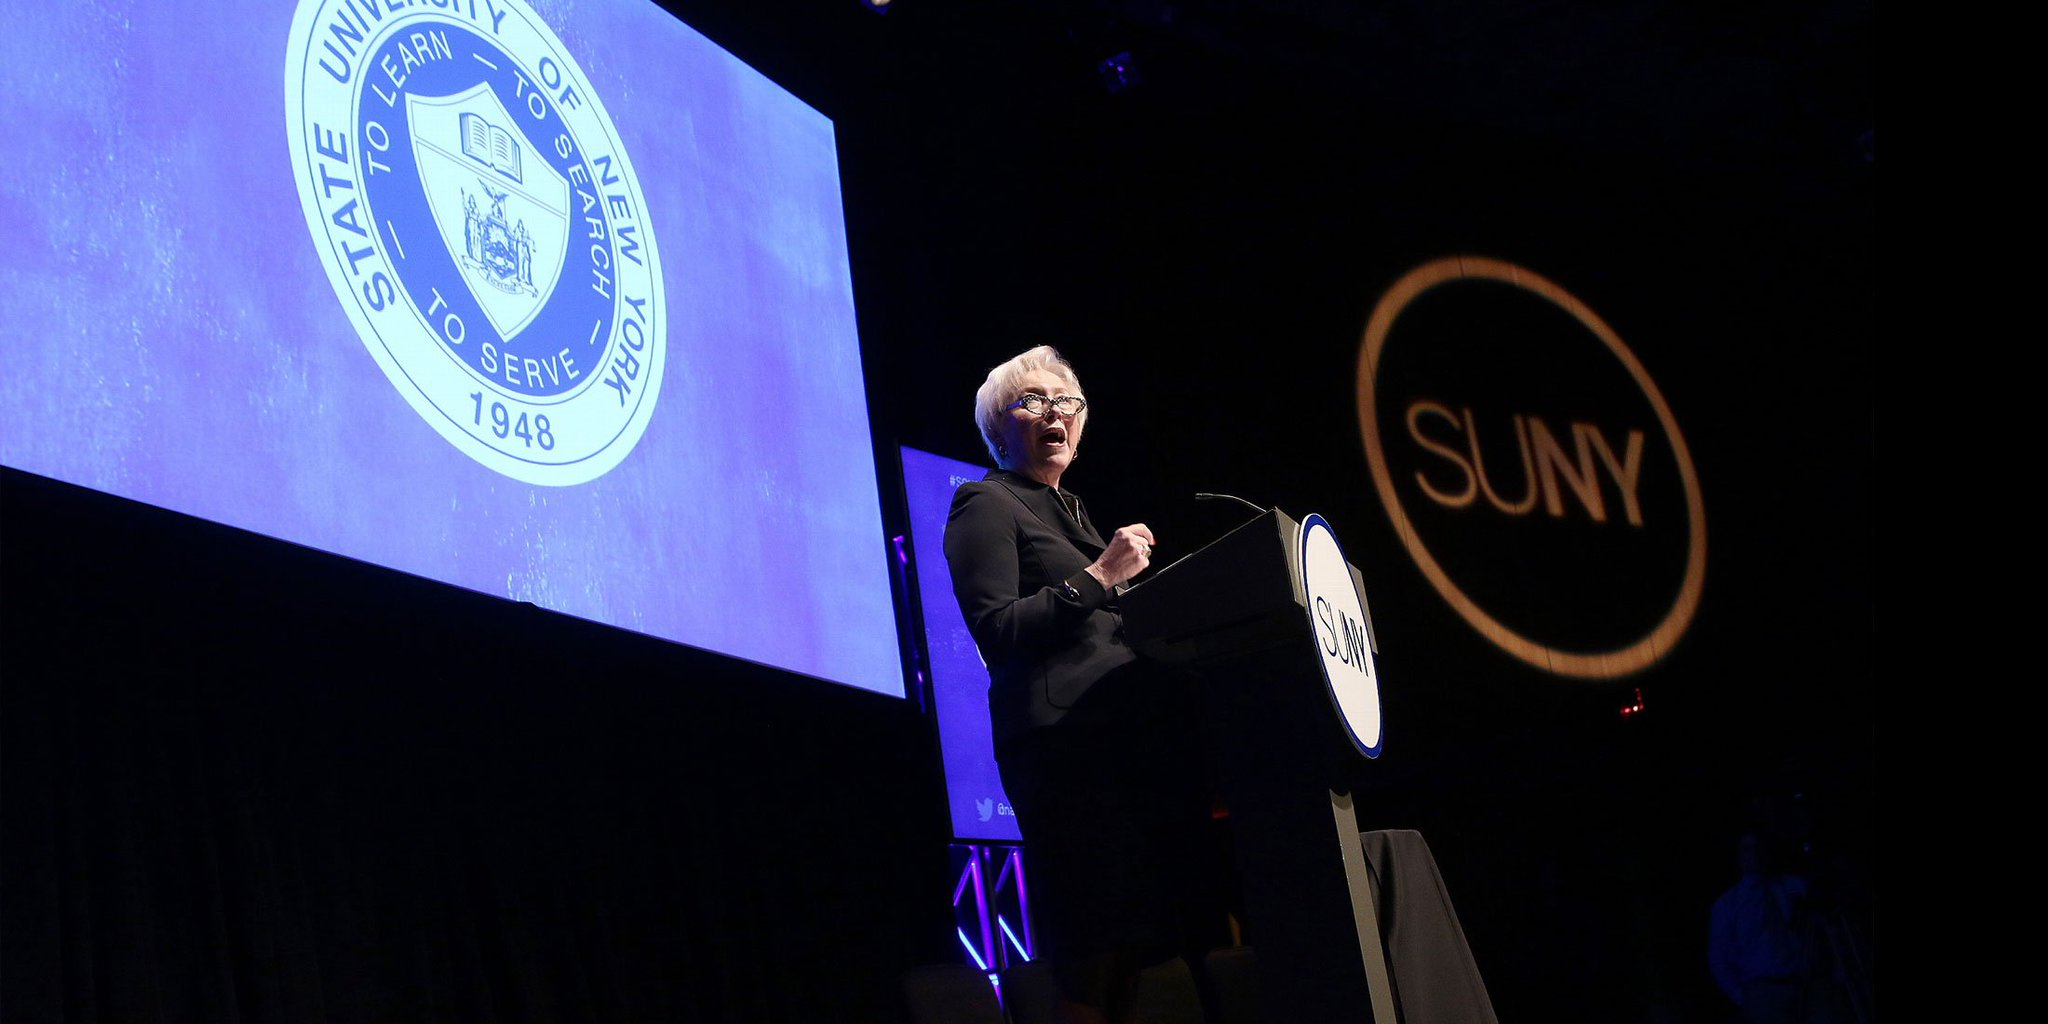 NEWS: Chancellor @NancyZimpher to Deliver 2017 State of the University Address on Monday, January 23: #SOU2017  https://t.co/EJUbvT15DU https://t.co/np7qIK8TBd